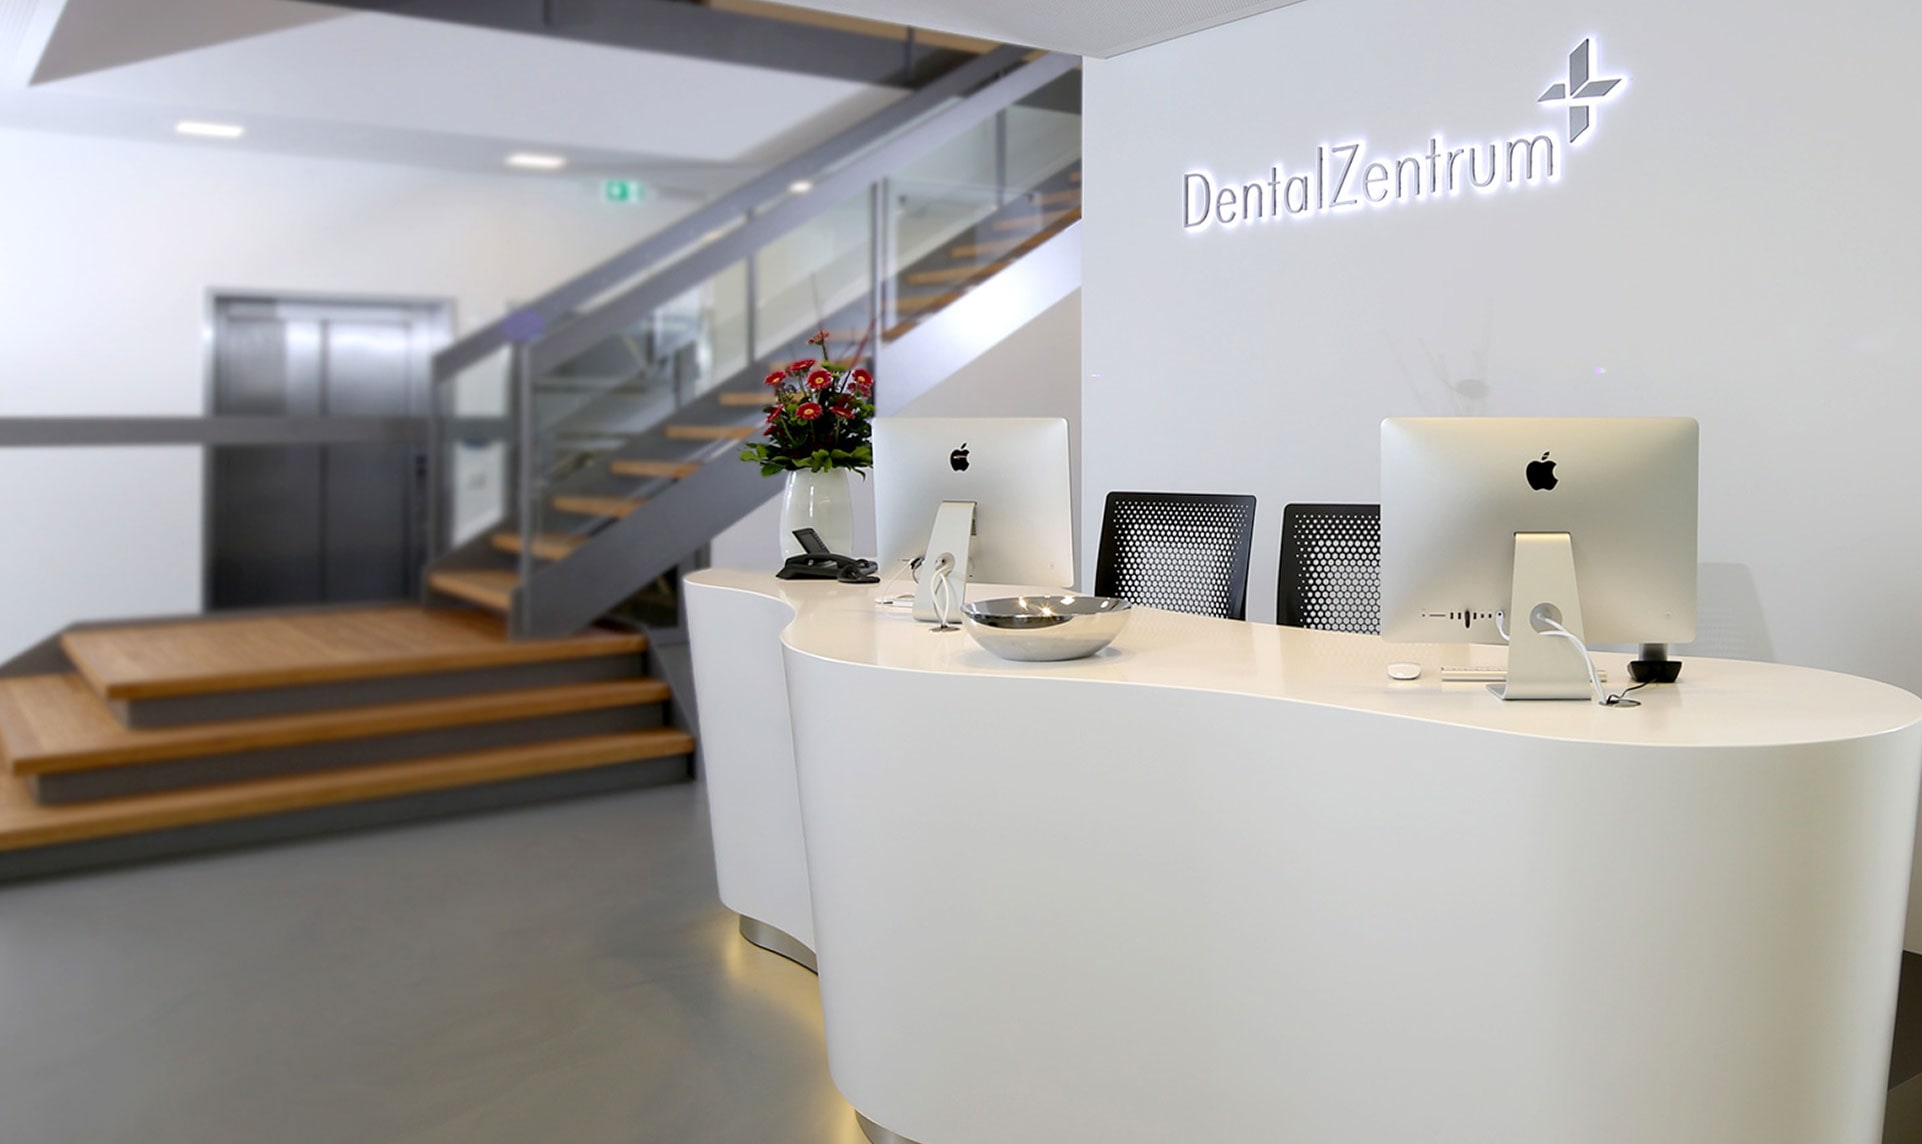 Dentalzentrum Bayreuth